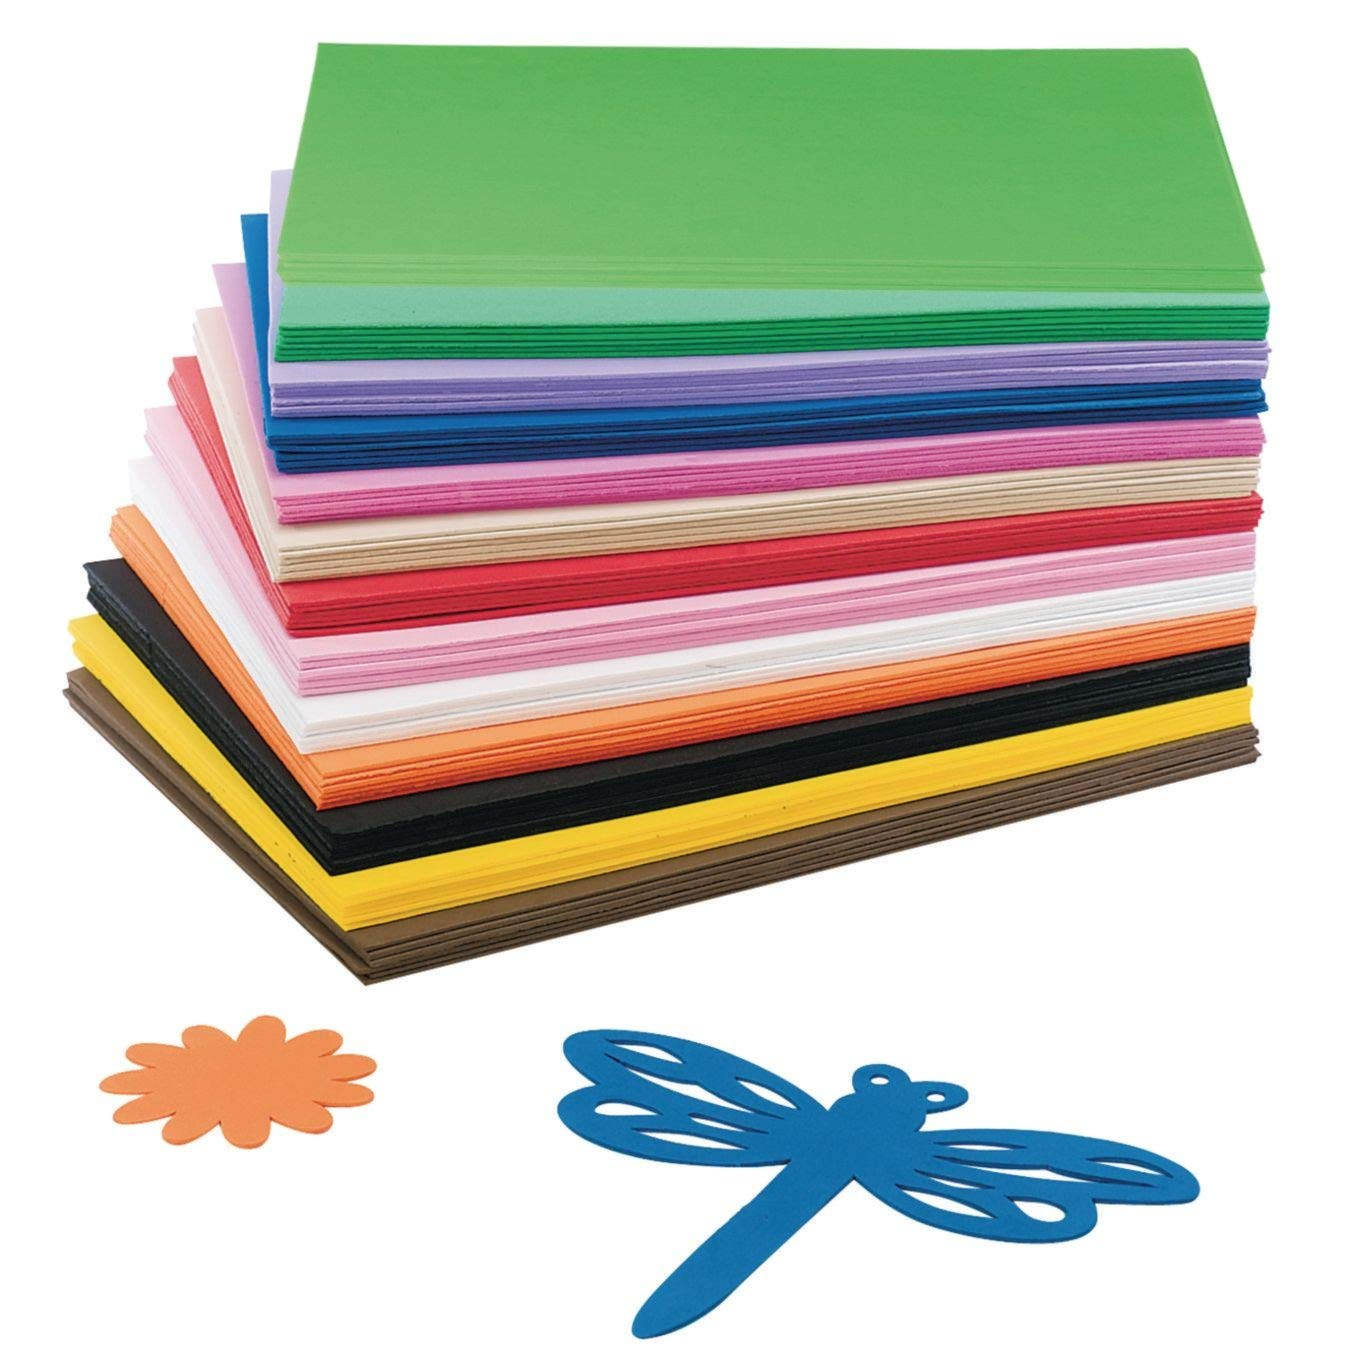 Pack of 12 Assorted Primary Colors 12 x 18 Inches Darice Foam Sheets